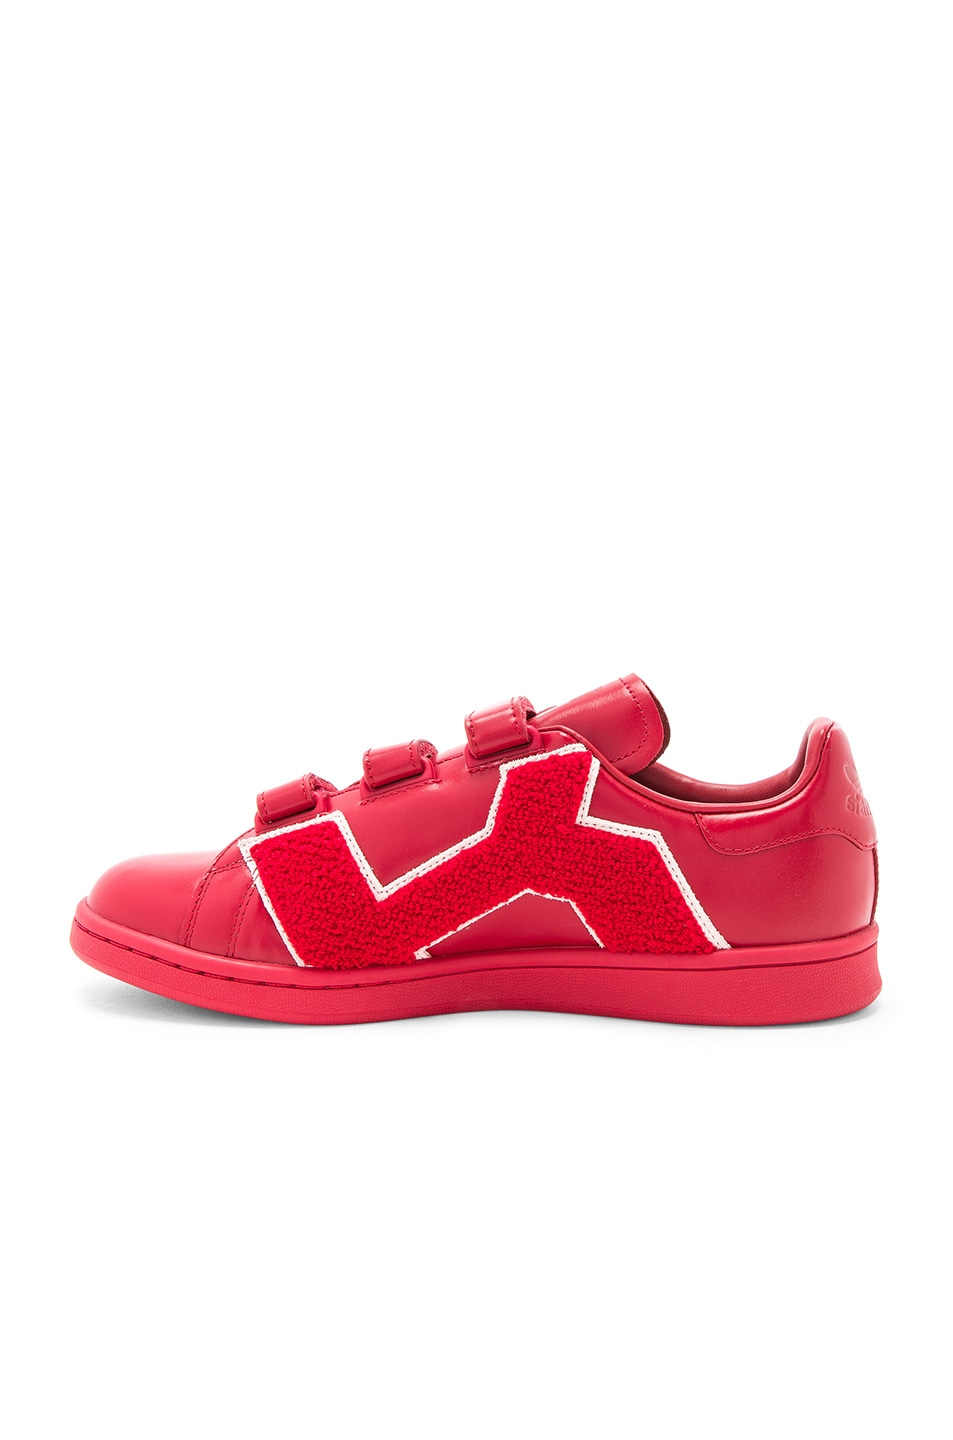 Image 5 of Raf Simons x Adidas RS Stan Smith Comfort Badge in Power Red d9ab5c338